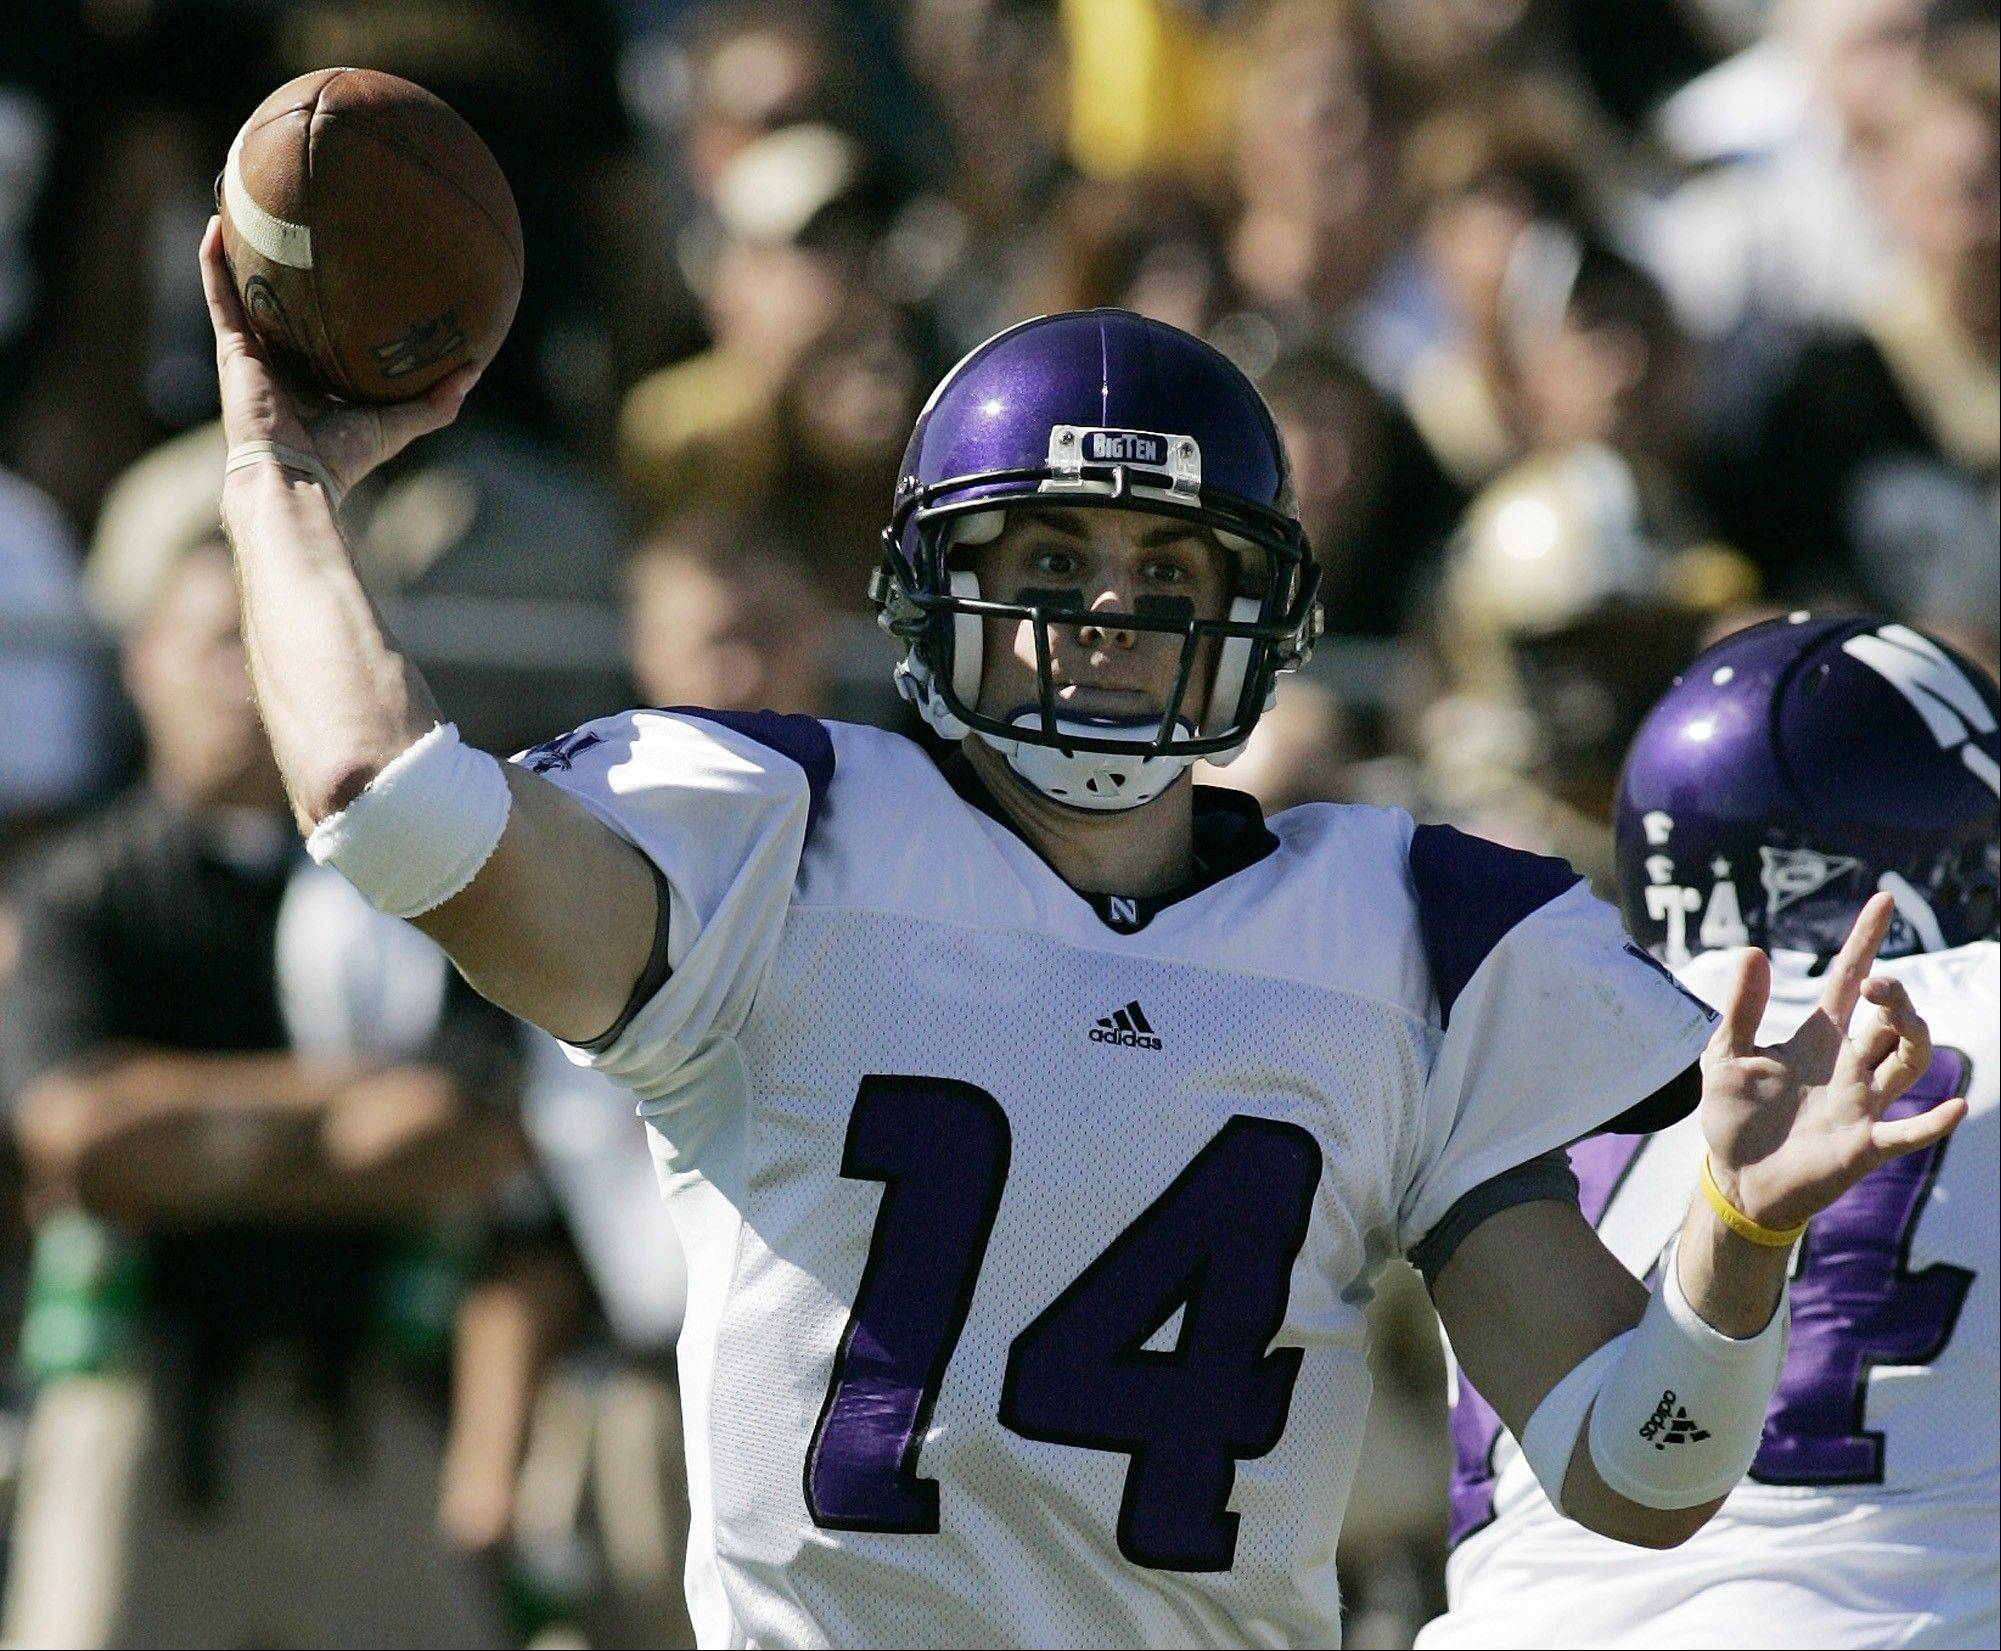 Quarterback Brett Basanez, here throwing a pass during his Northwestern days, is among the recent inductees to St. Viator's Athletics Hall of Fame.